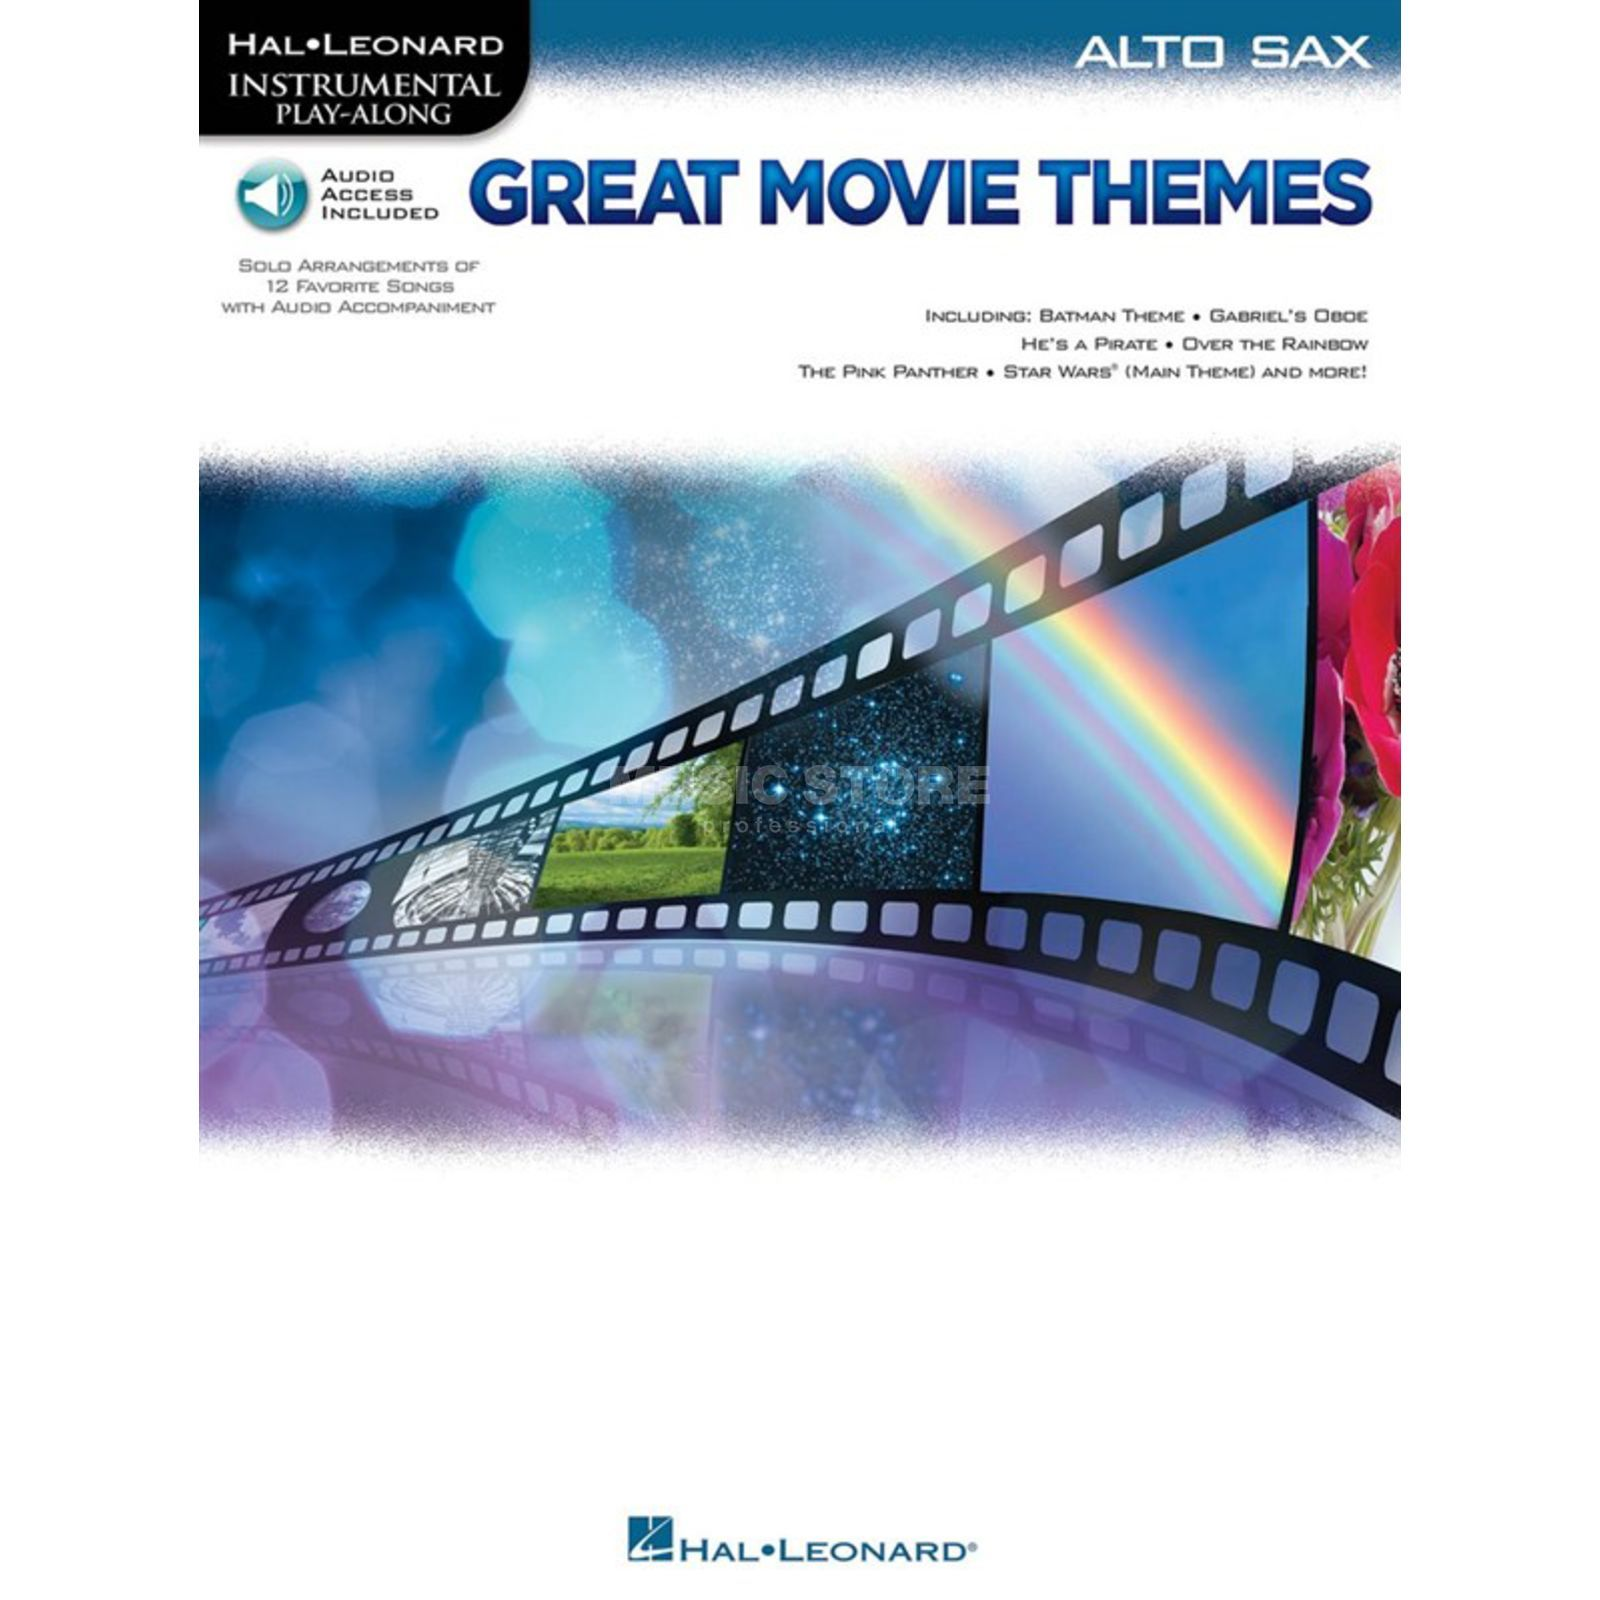 Hal Leonard Instrumental Play-Along: Great Movie Themes - Alto Saxophone Produktbillede